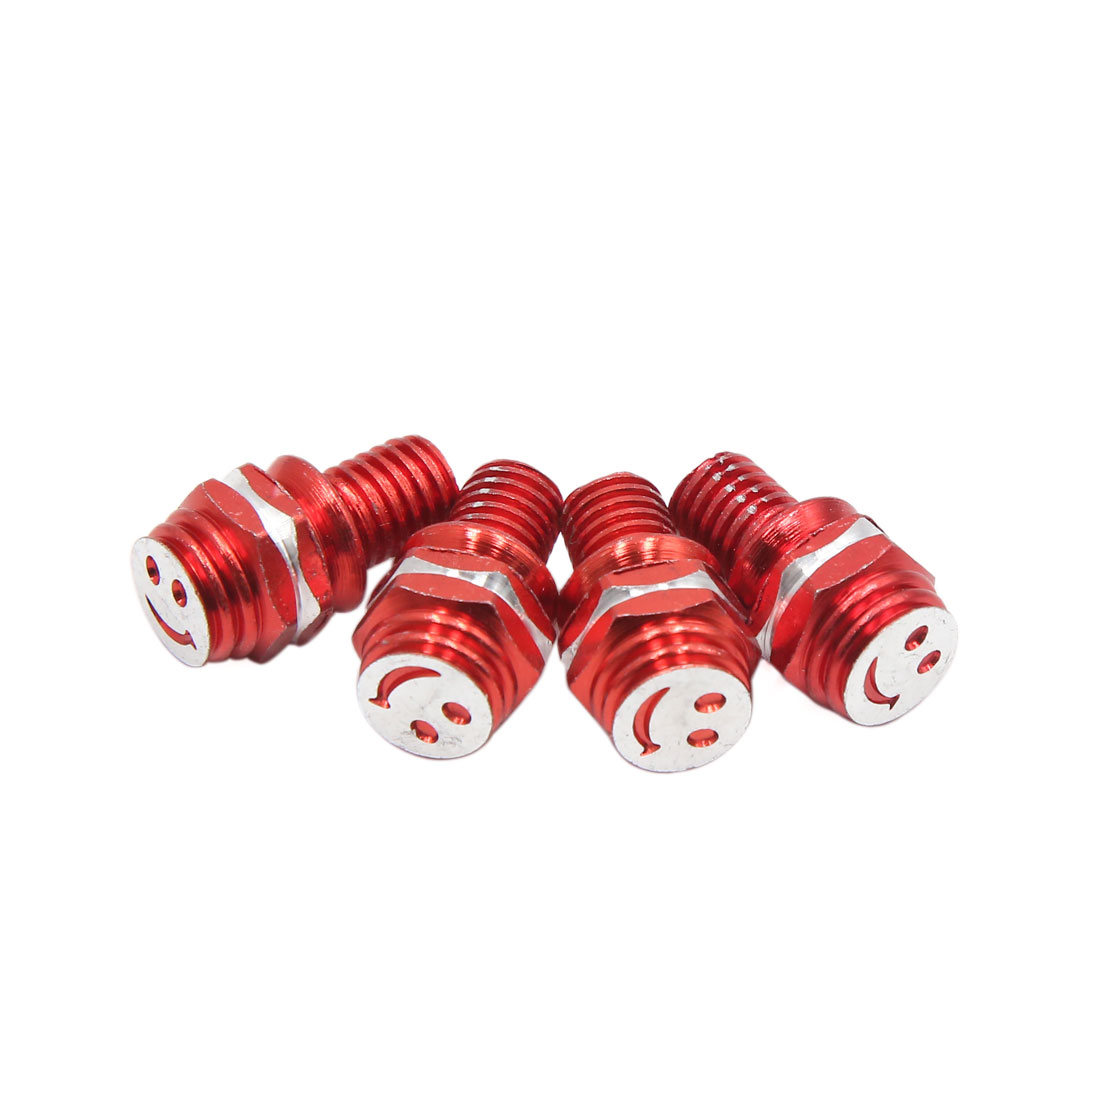 4pcs Red 8mm Thread Diameter Smiling Face Pattern Motorcycle License Plate Bolt Screws